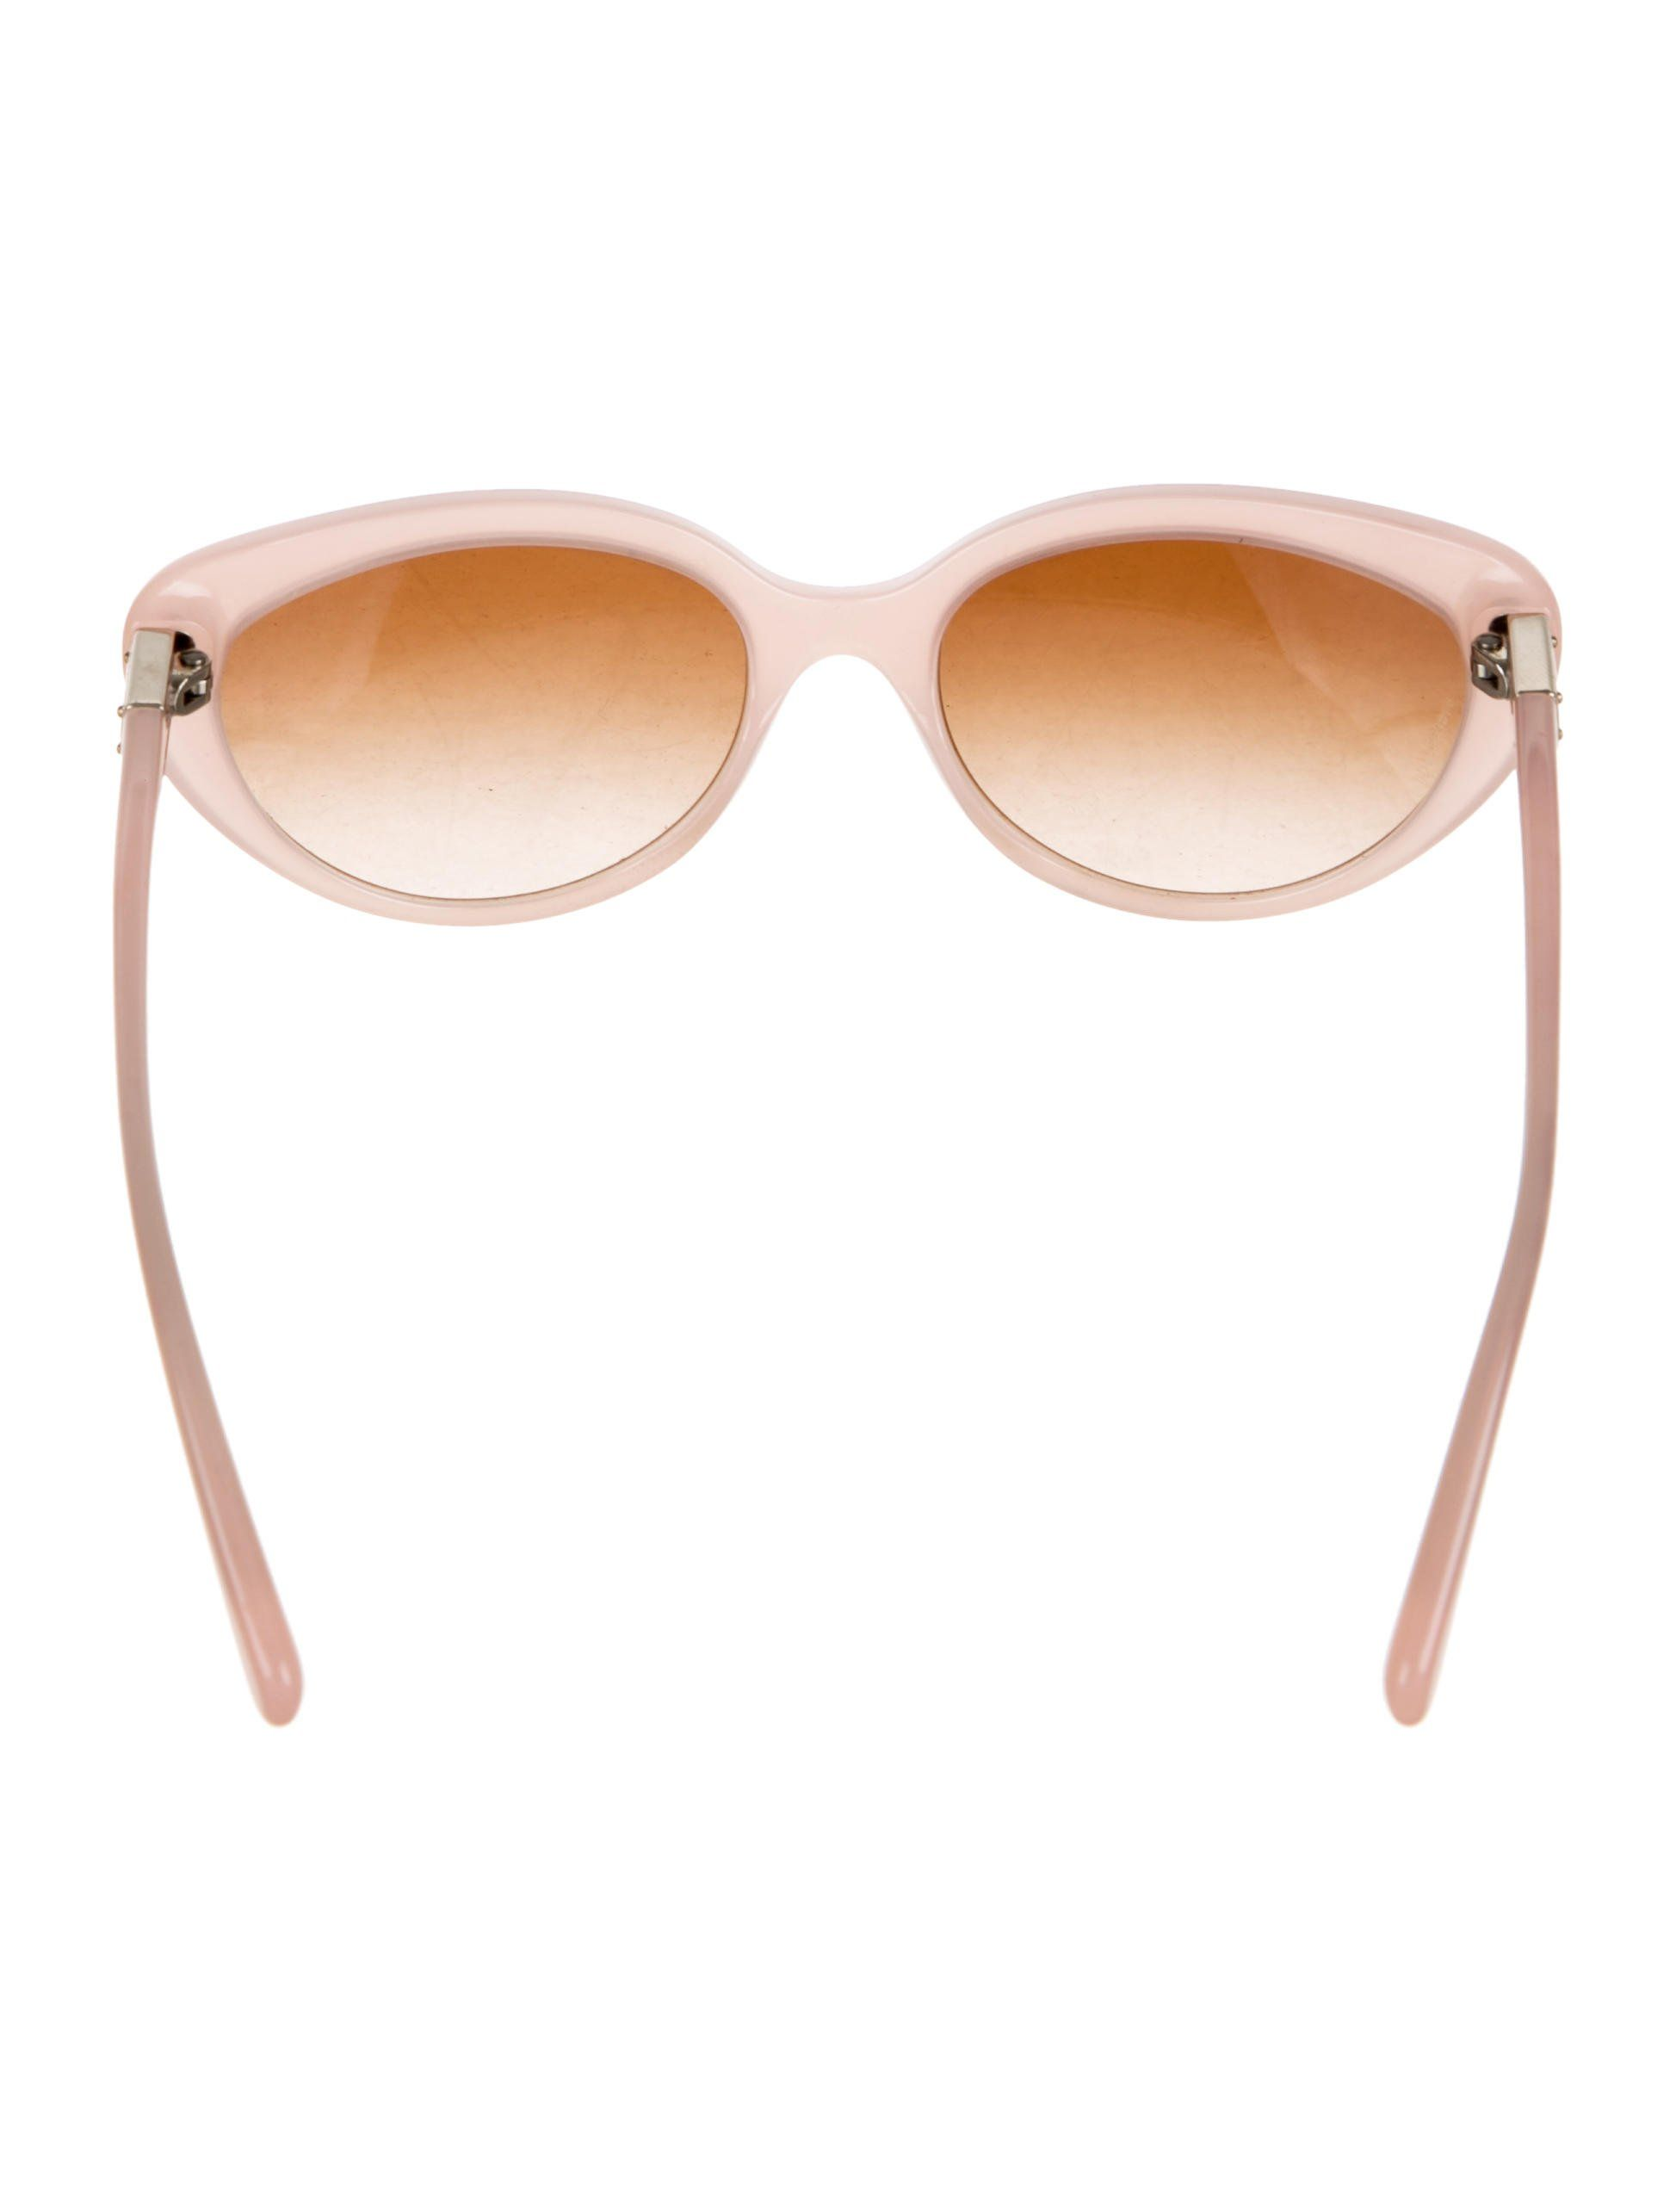 421aedff26c9 ... Womens Fashion Casual by Sundaymor. Pink acetate Dolce   Gabbana  cat-eye sunglasses with gradient lenses and logos at arms